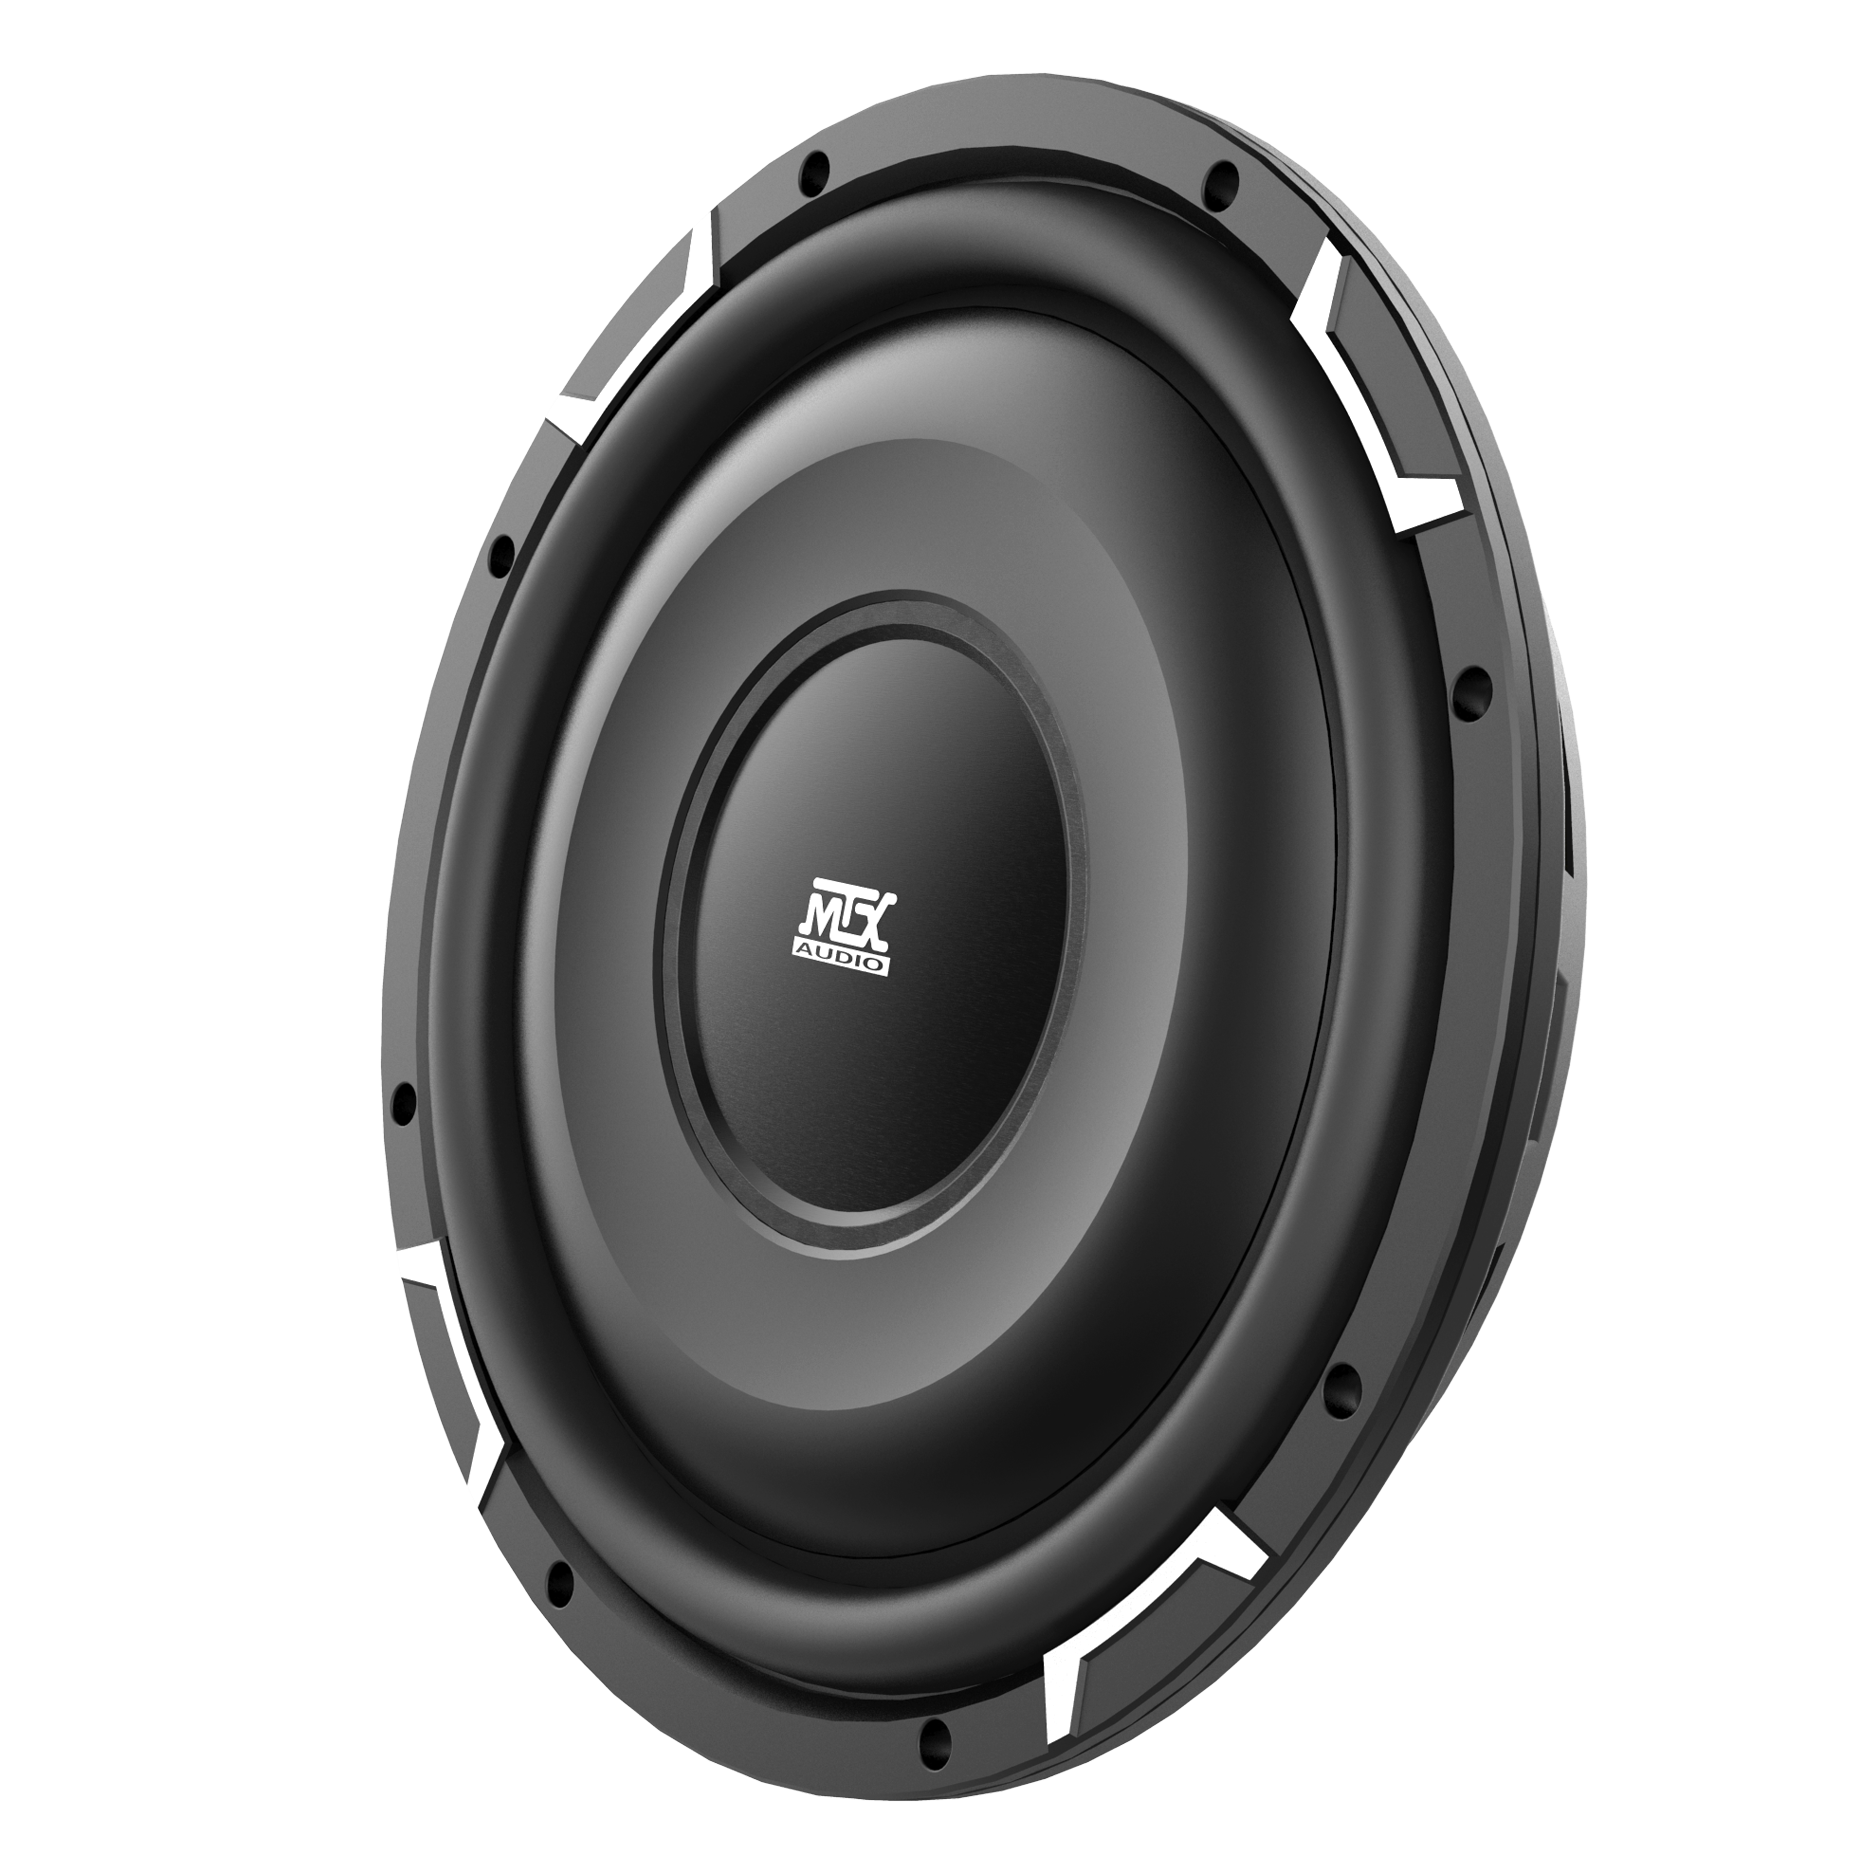 FPR Series FPR12-02 12 inch 400W RMS 2Ω Shallow Mount Car Audio Subwoofer